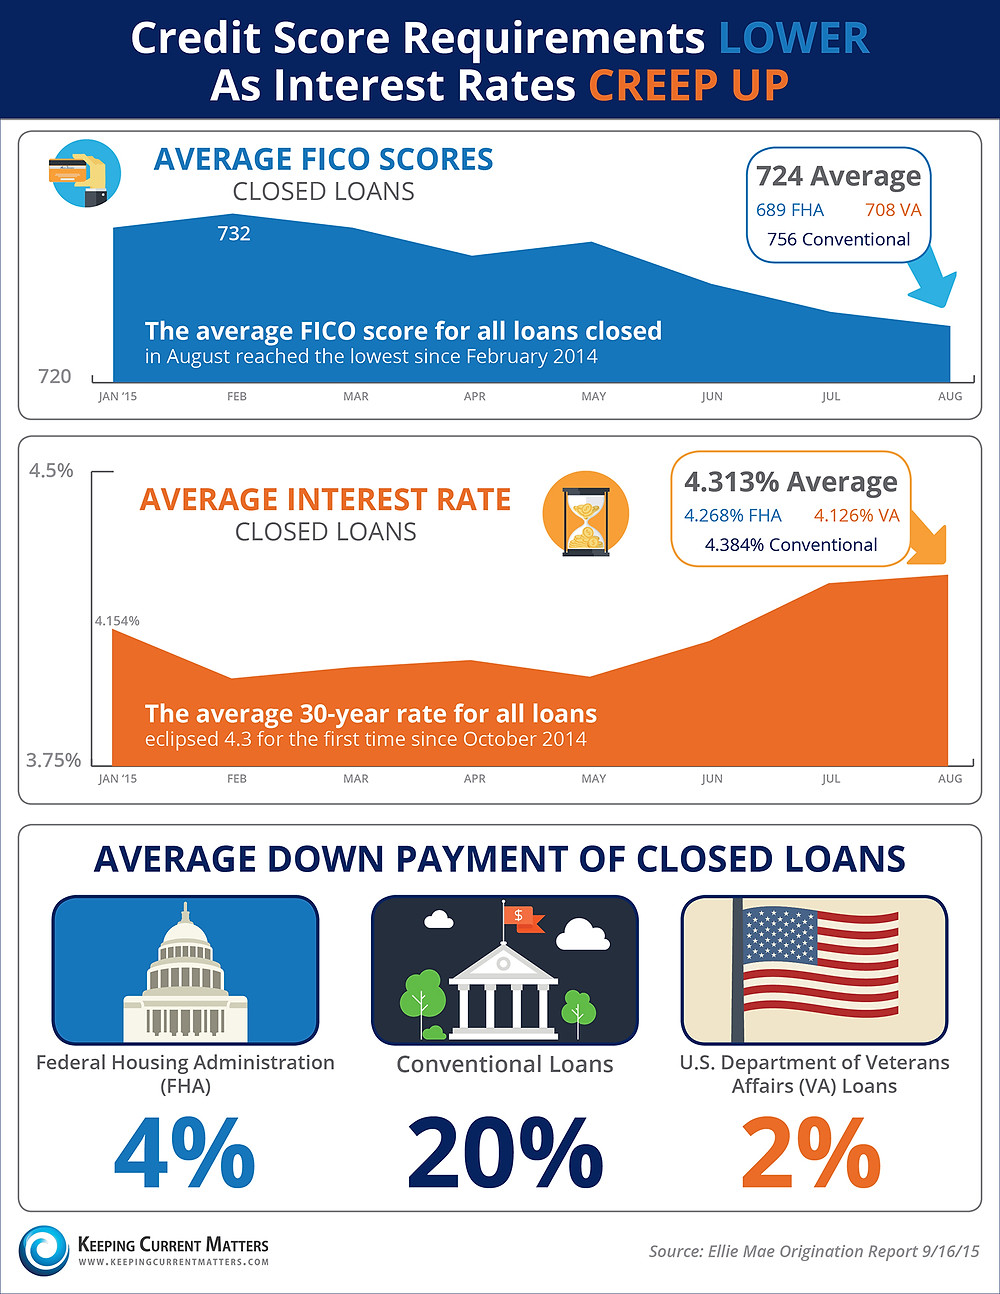 Credit Score Requirements LOWER As Interest Rates CREEP UP! [INFOGRAPHIC] | Keeping Current Matters